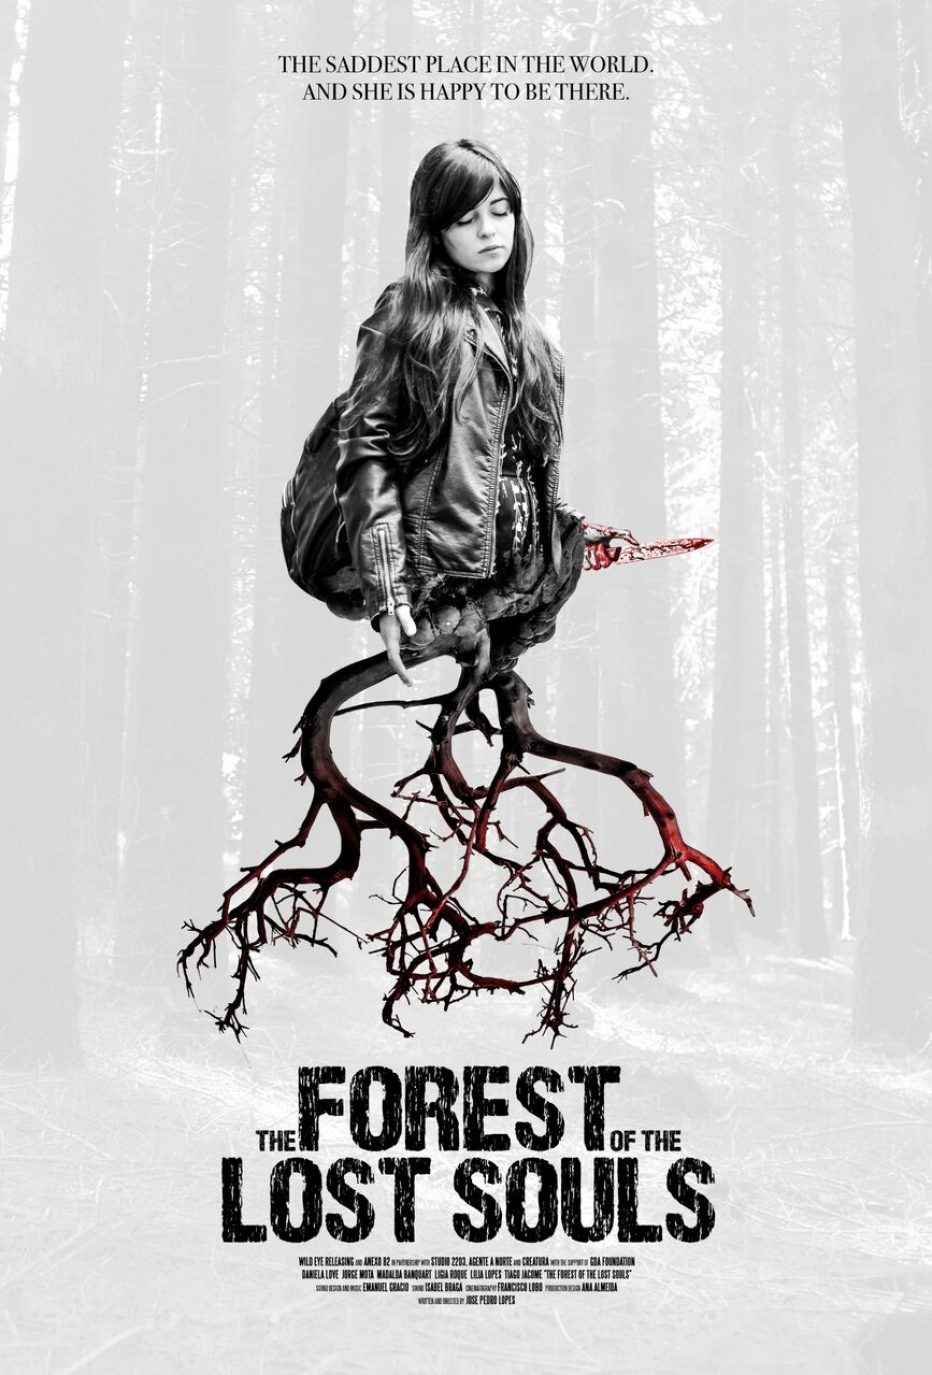 New Trailer for THE FOREST OF THE LOST SOULS – in theaters across North America August 3 and on Demand